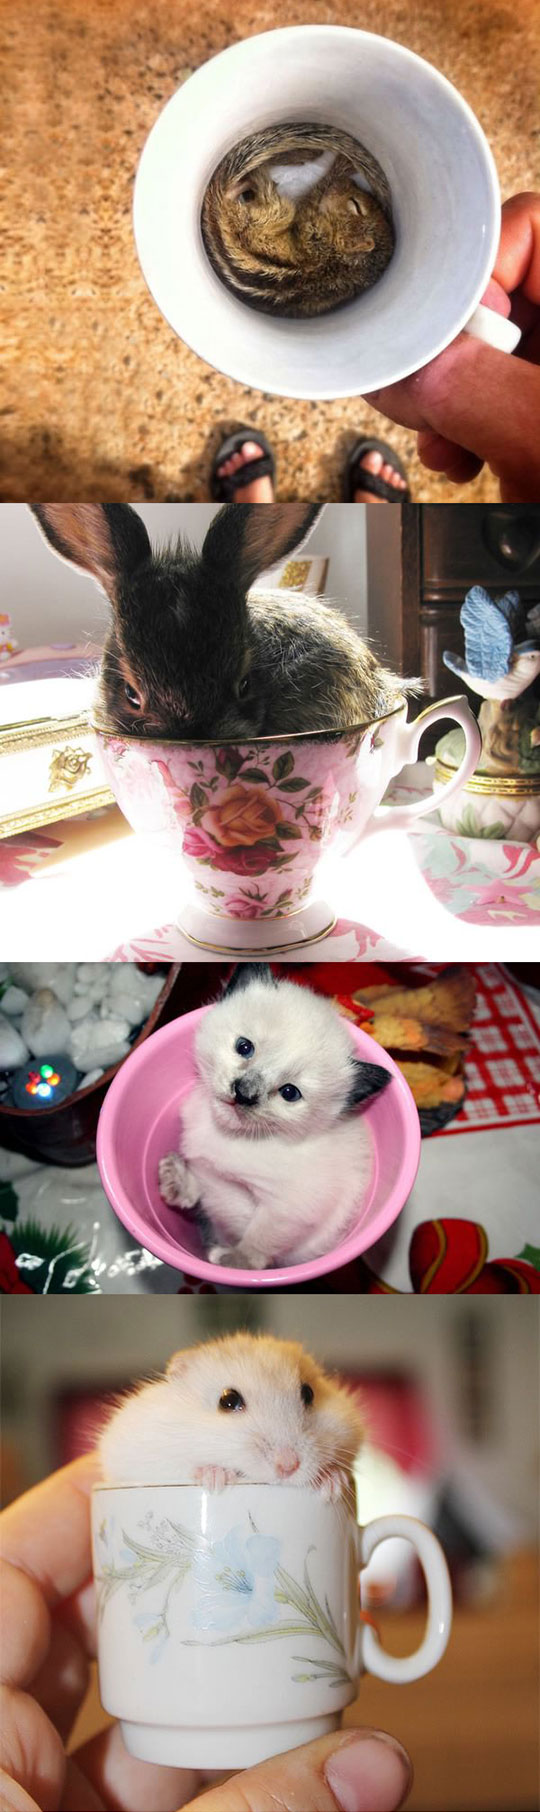 20 Cups Full Of Cuteness